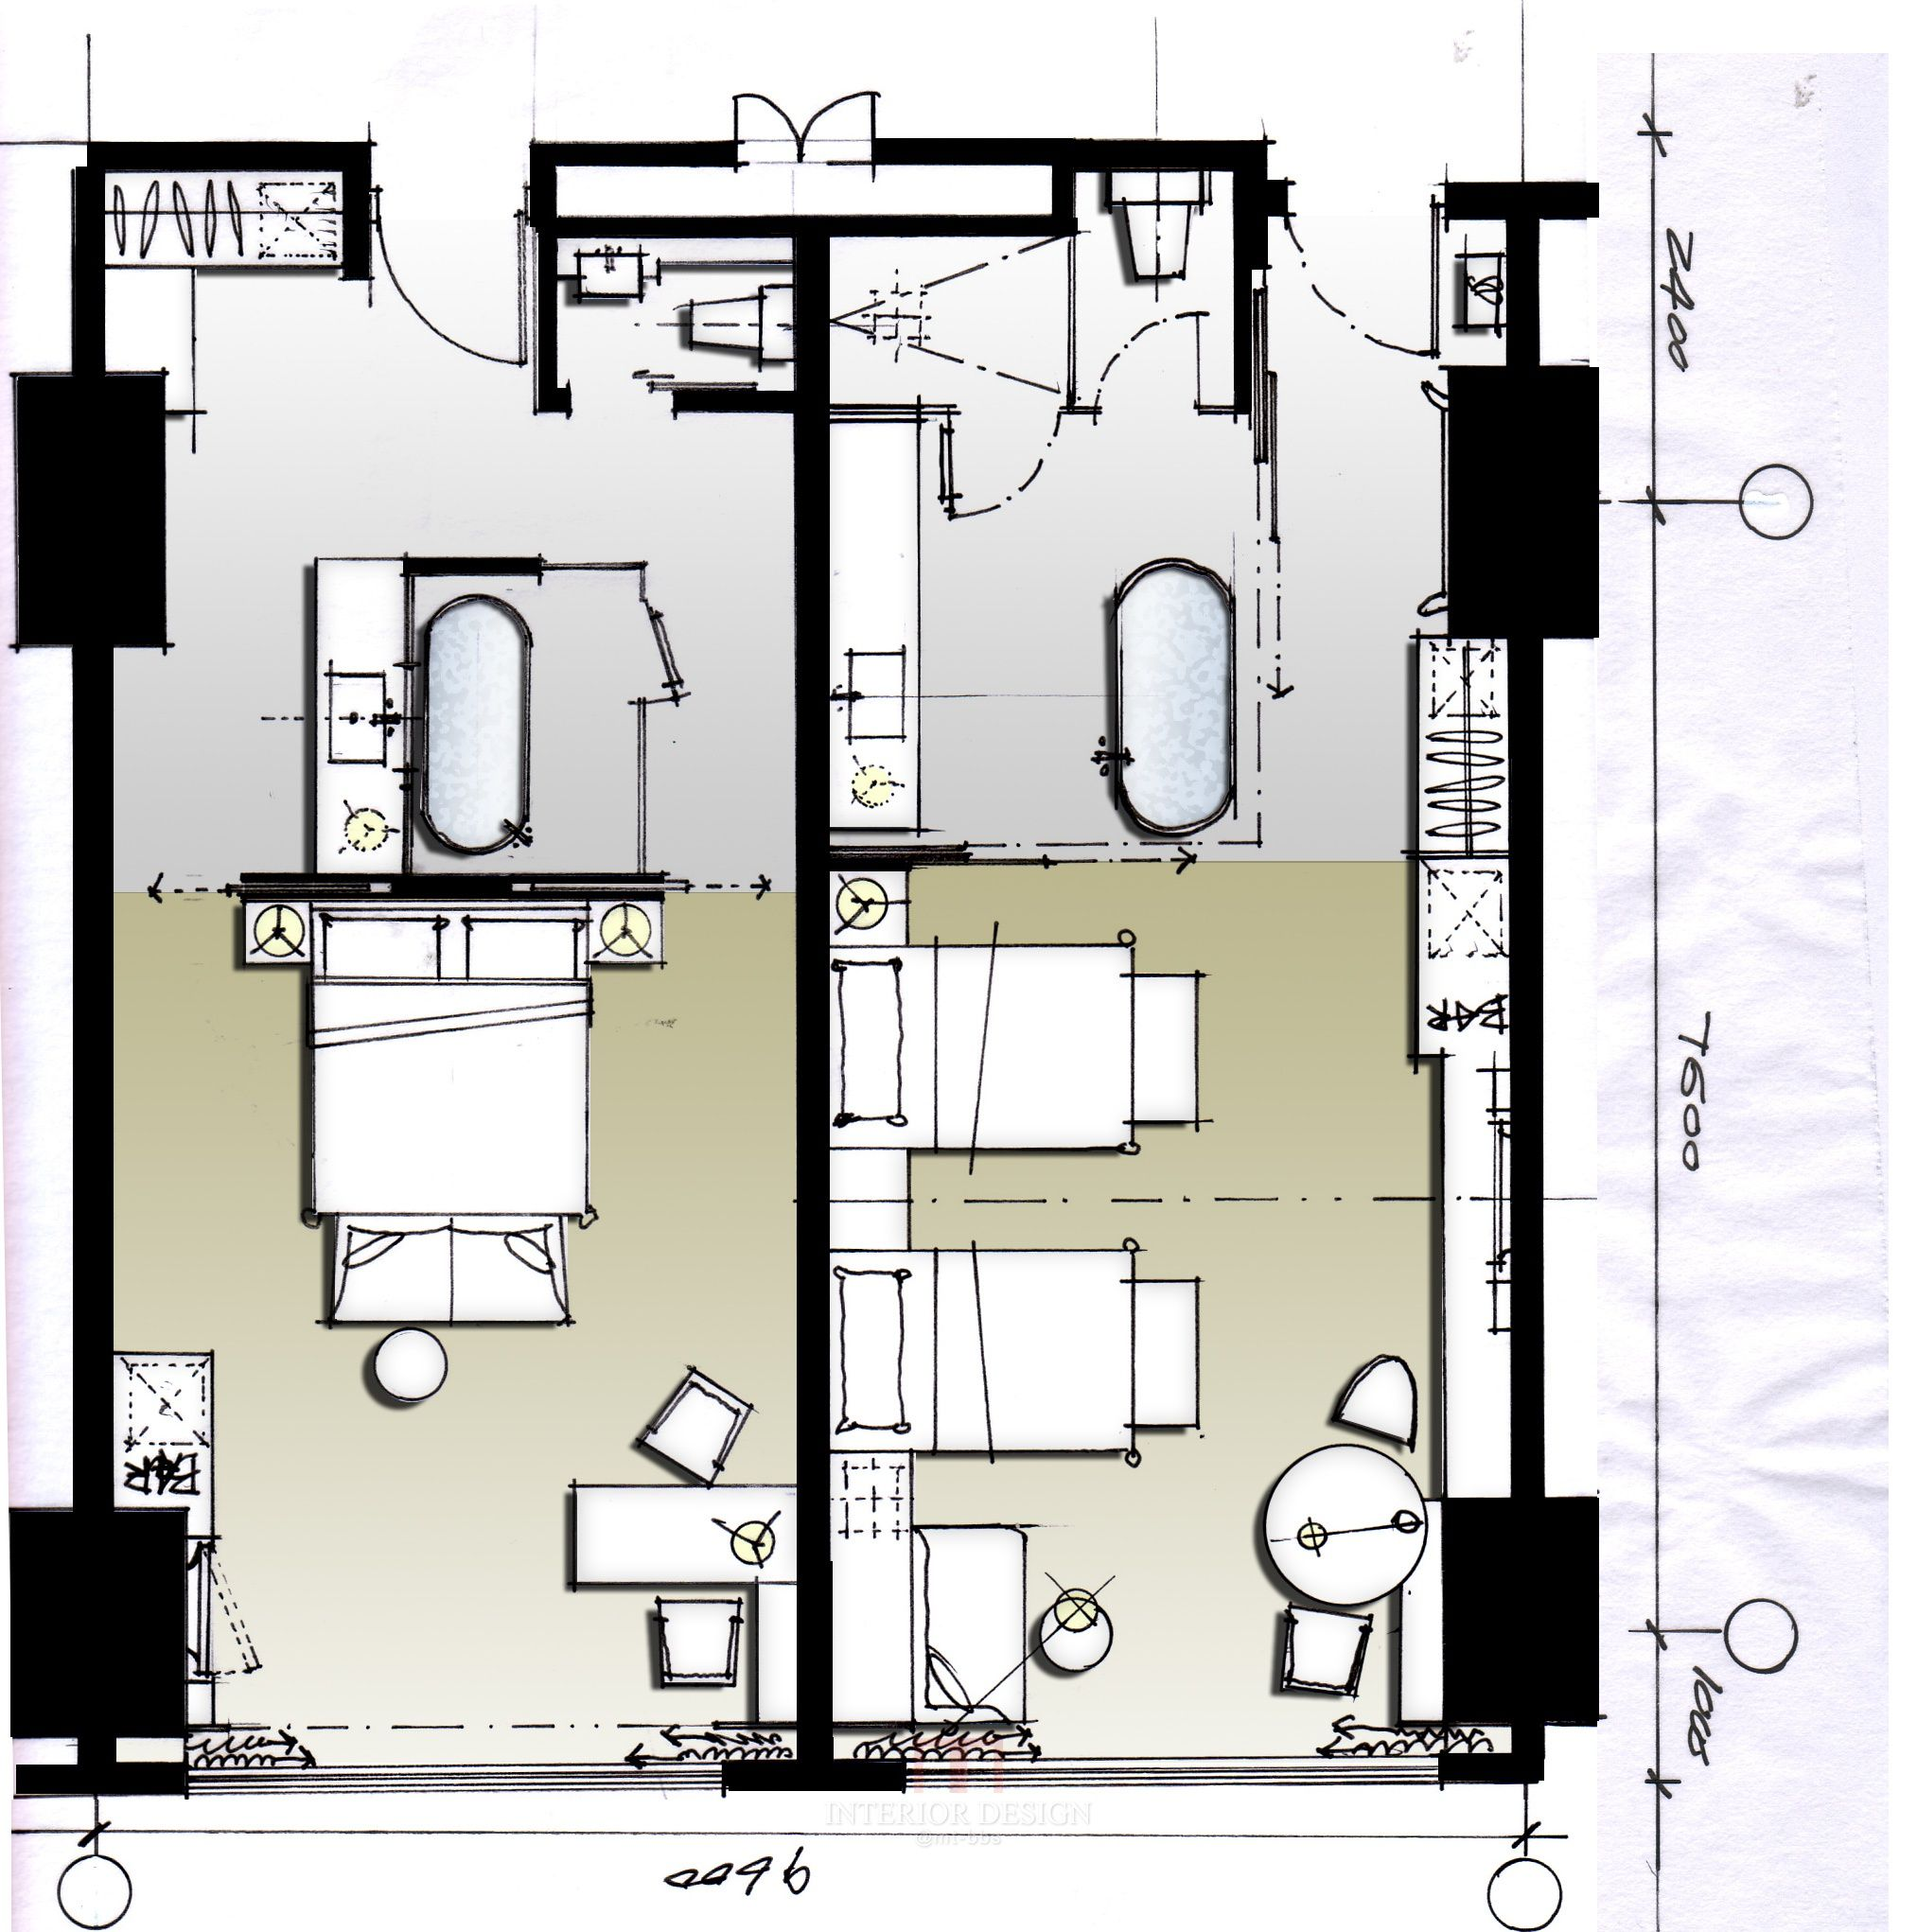 Pin By Evan Liu On Plan Hotel Floor Plan Hotel Plan Hotel Room Plan